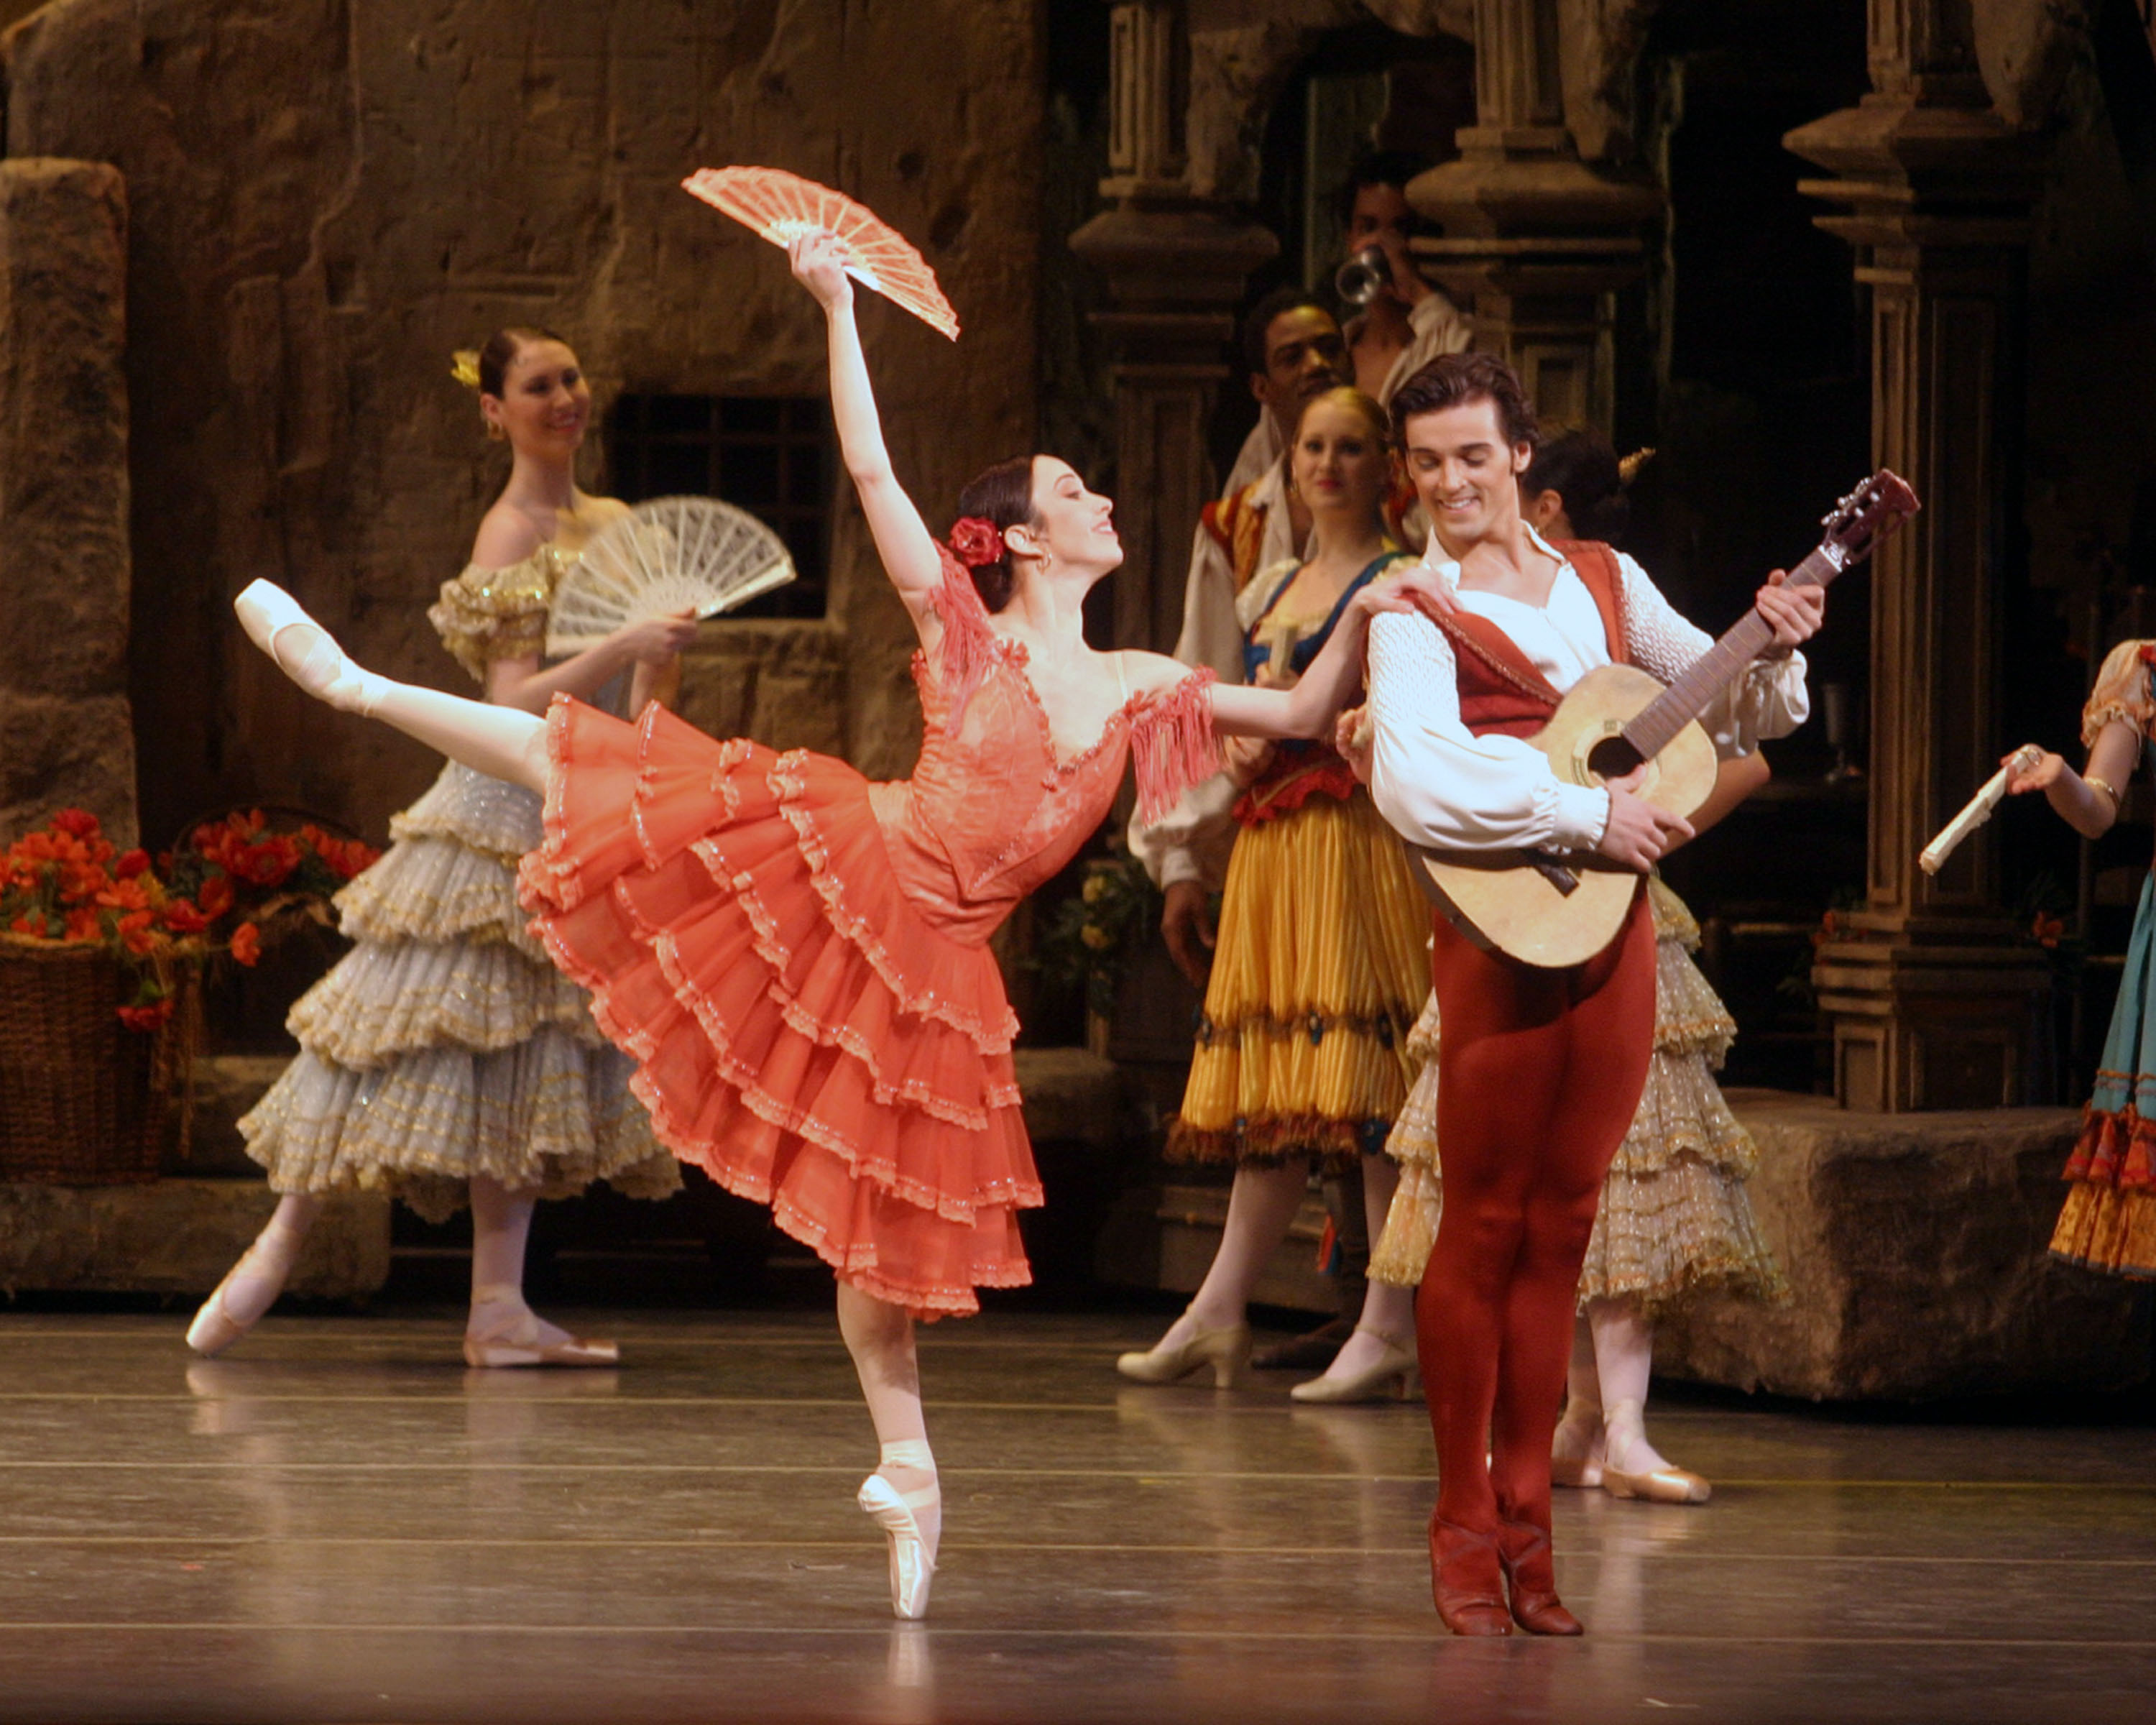 Living legend: The American Ballet Theatre has been designated a living national treasure by the U.S. Congress. | ROSALIE O'CONNOR